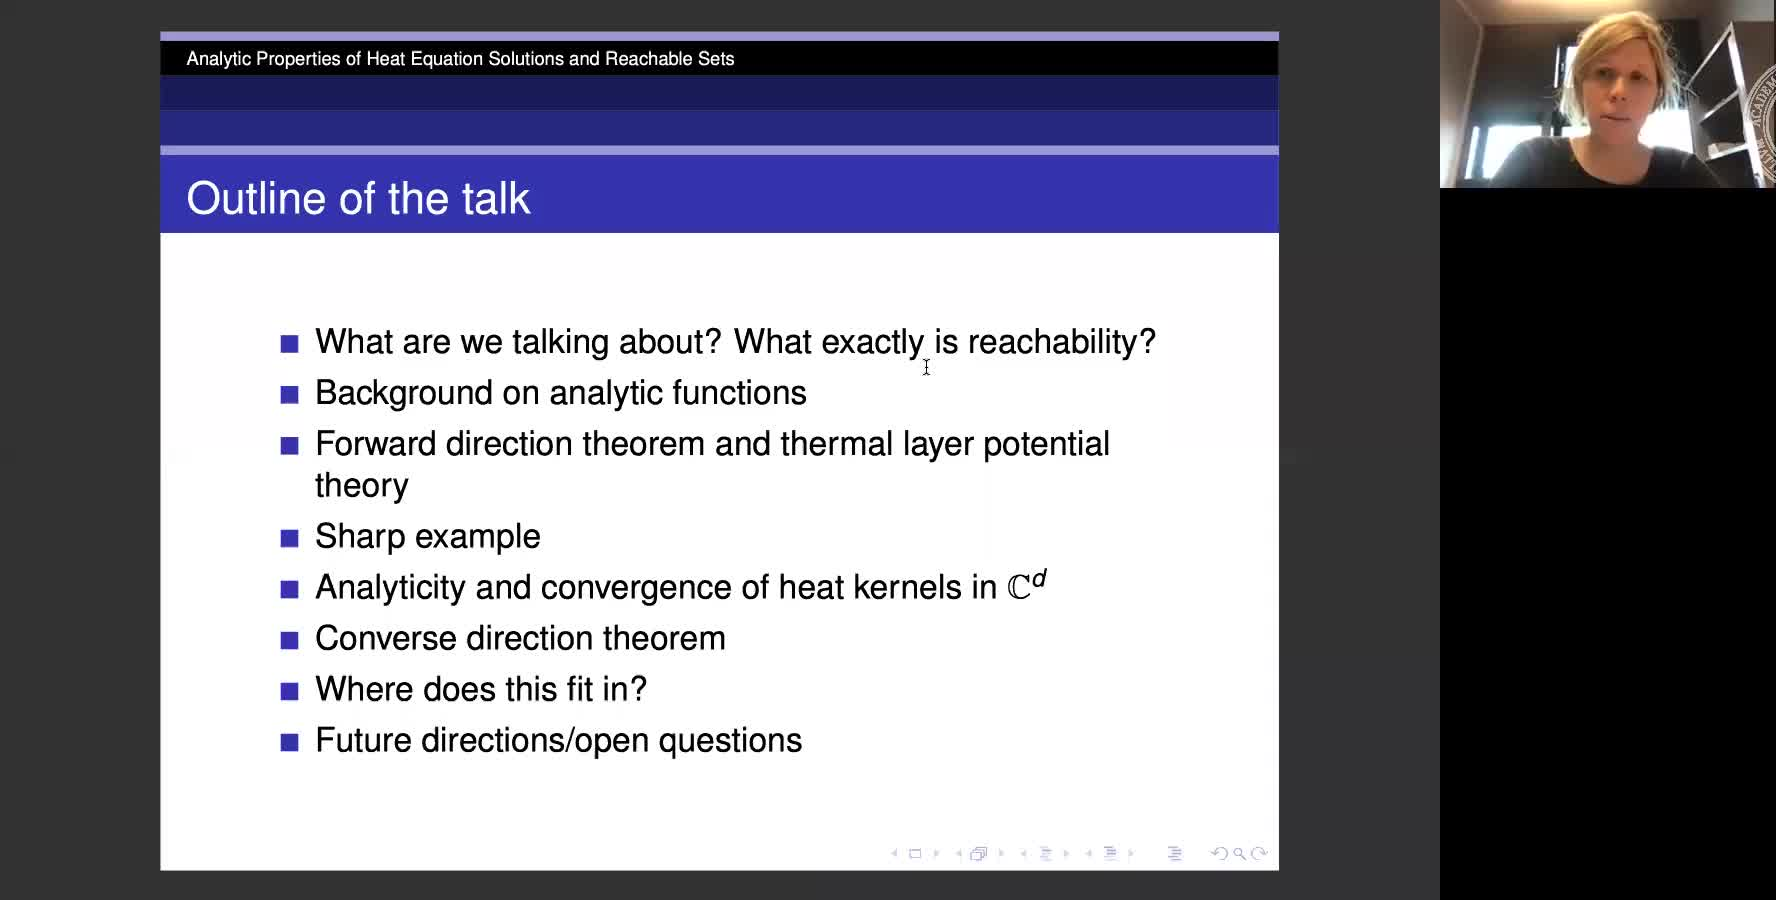 Analytic Properties of Heat Equation Solutions and Reachable Sets preview image